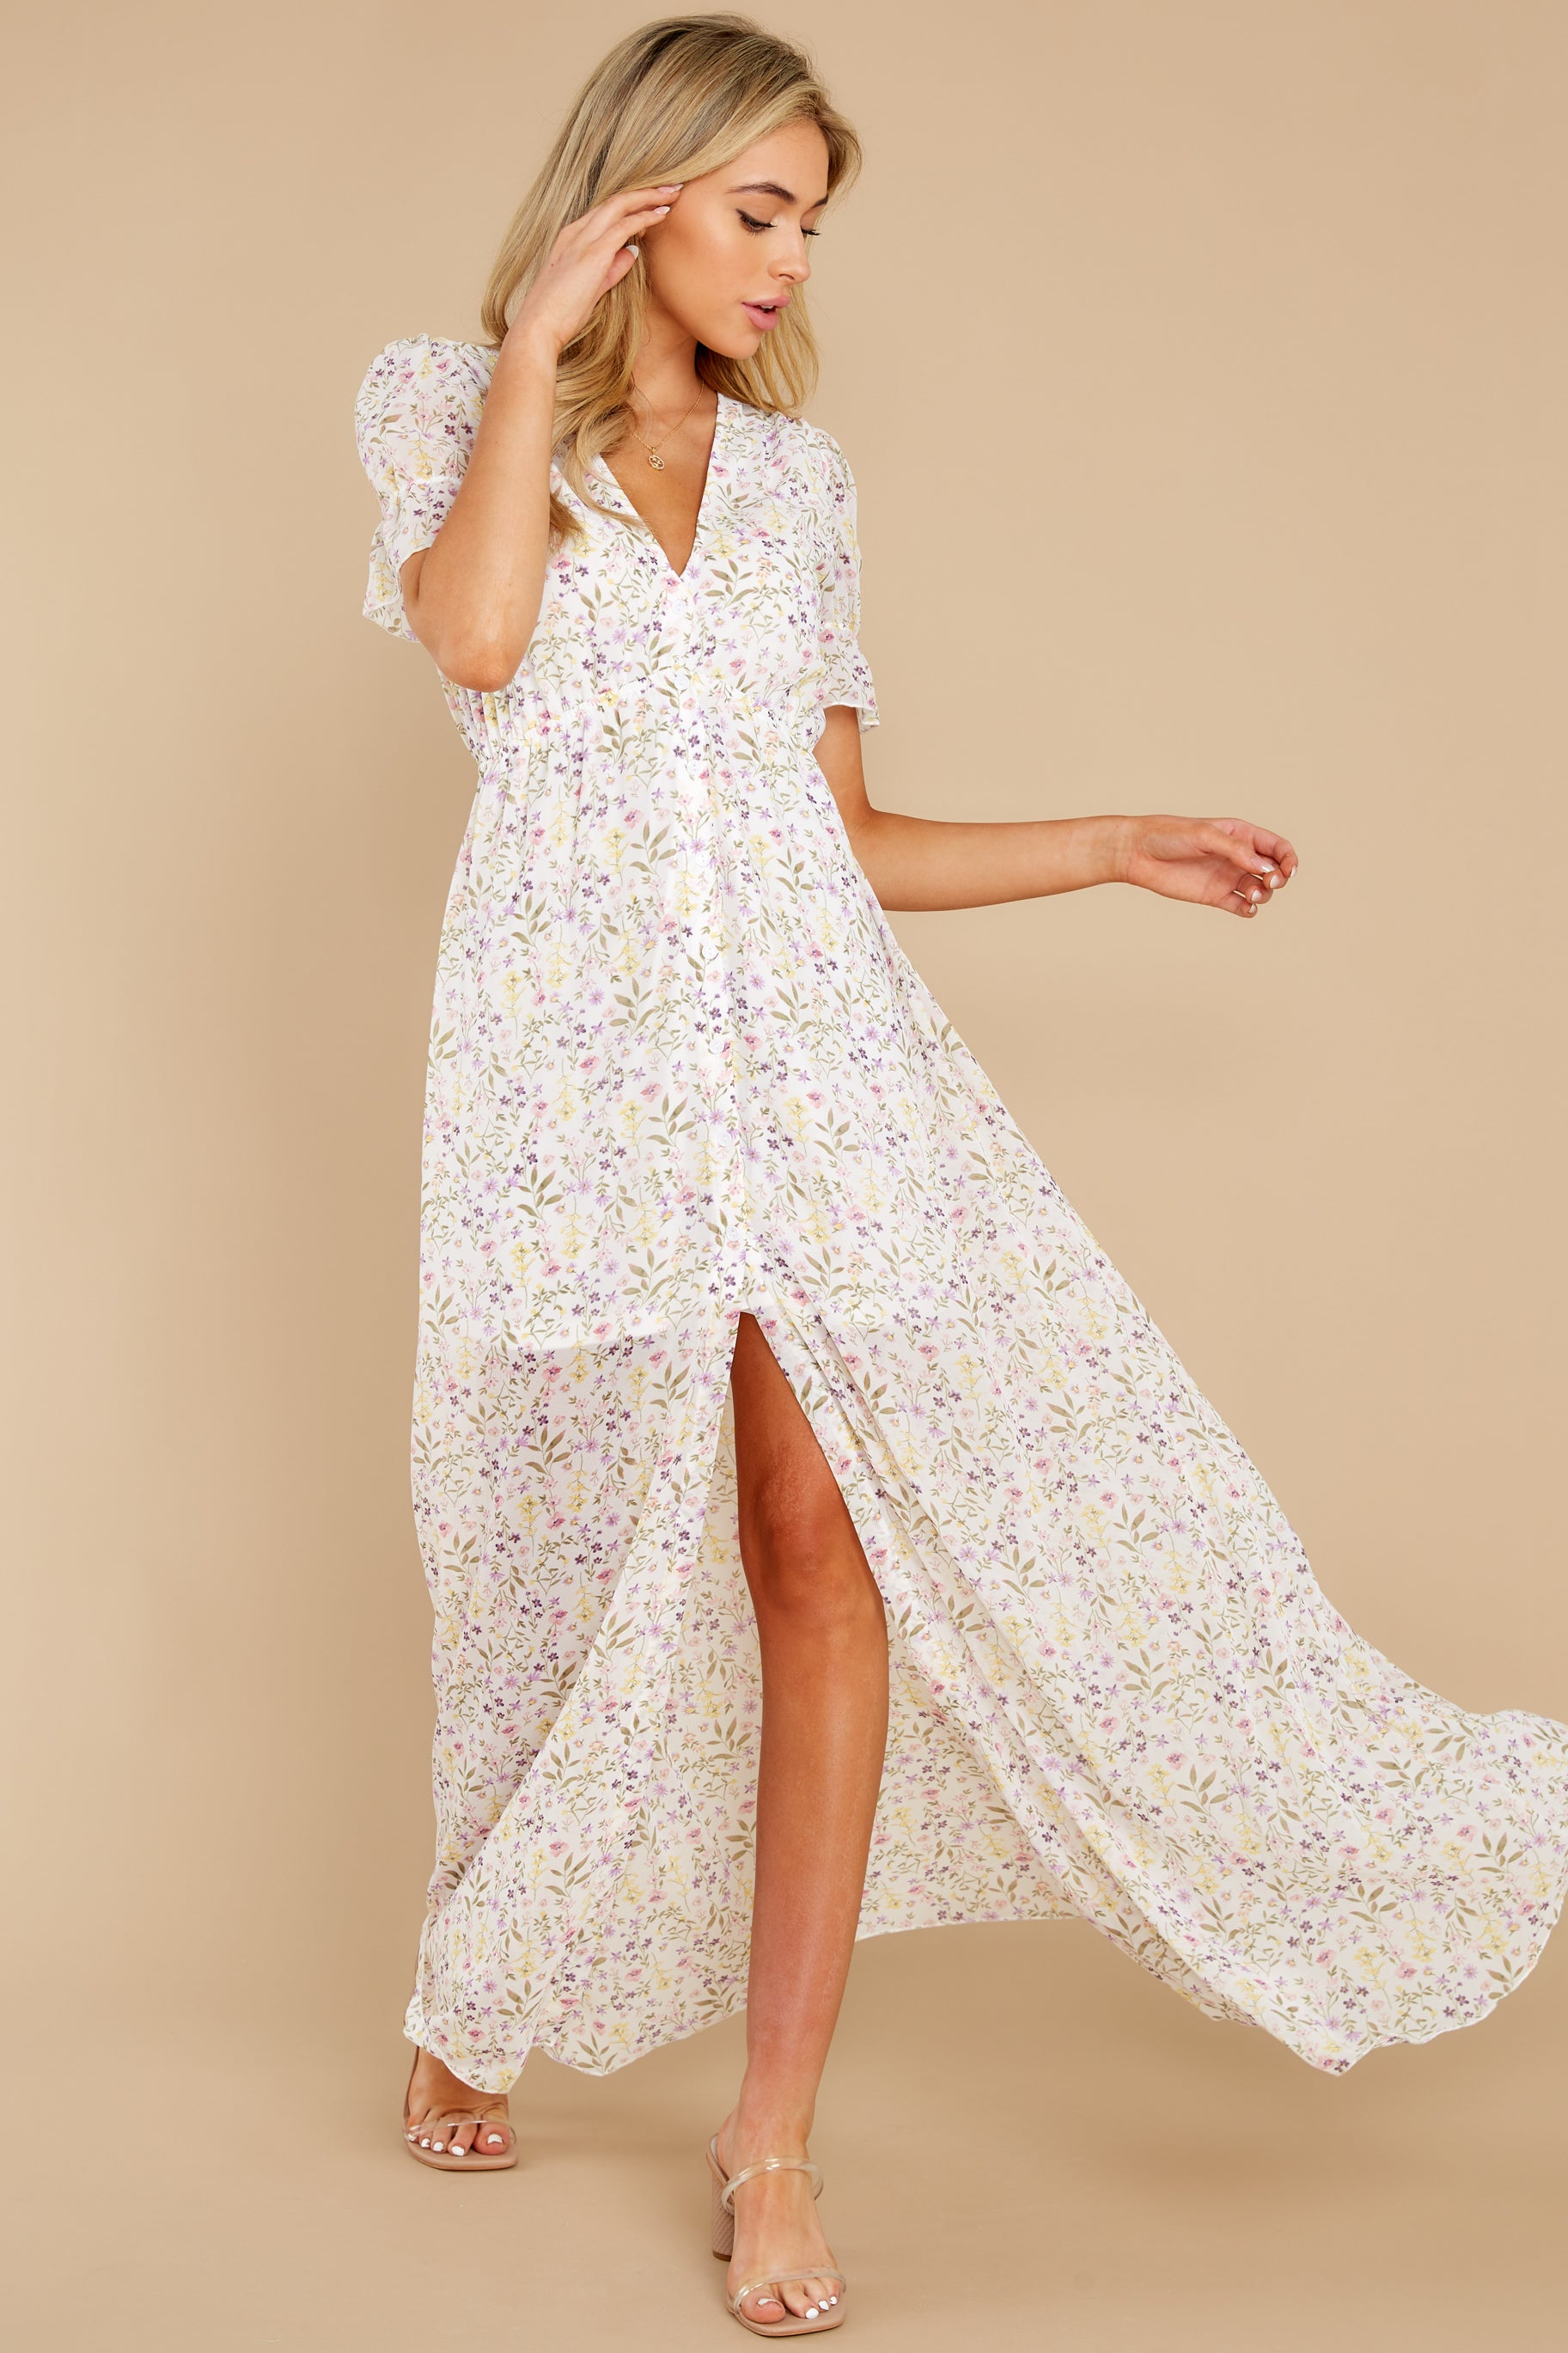 3 Work Of Art White Floral Print Maxi Dress at reddress.com